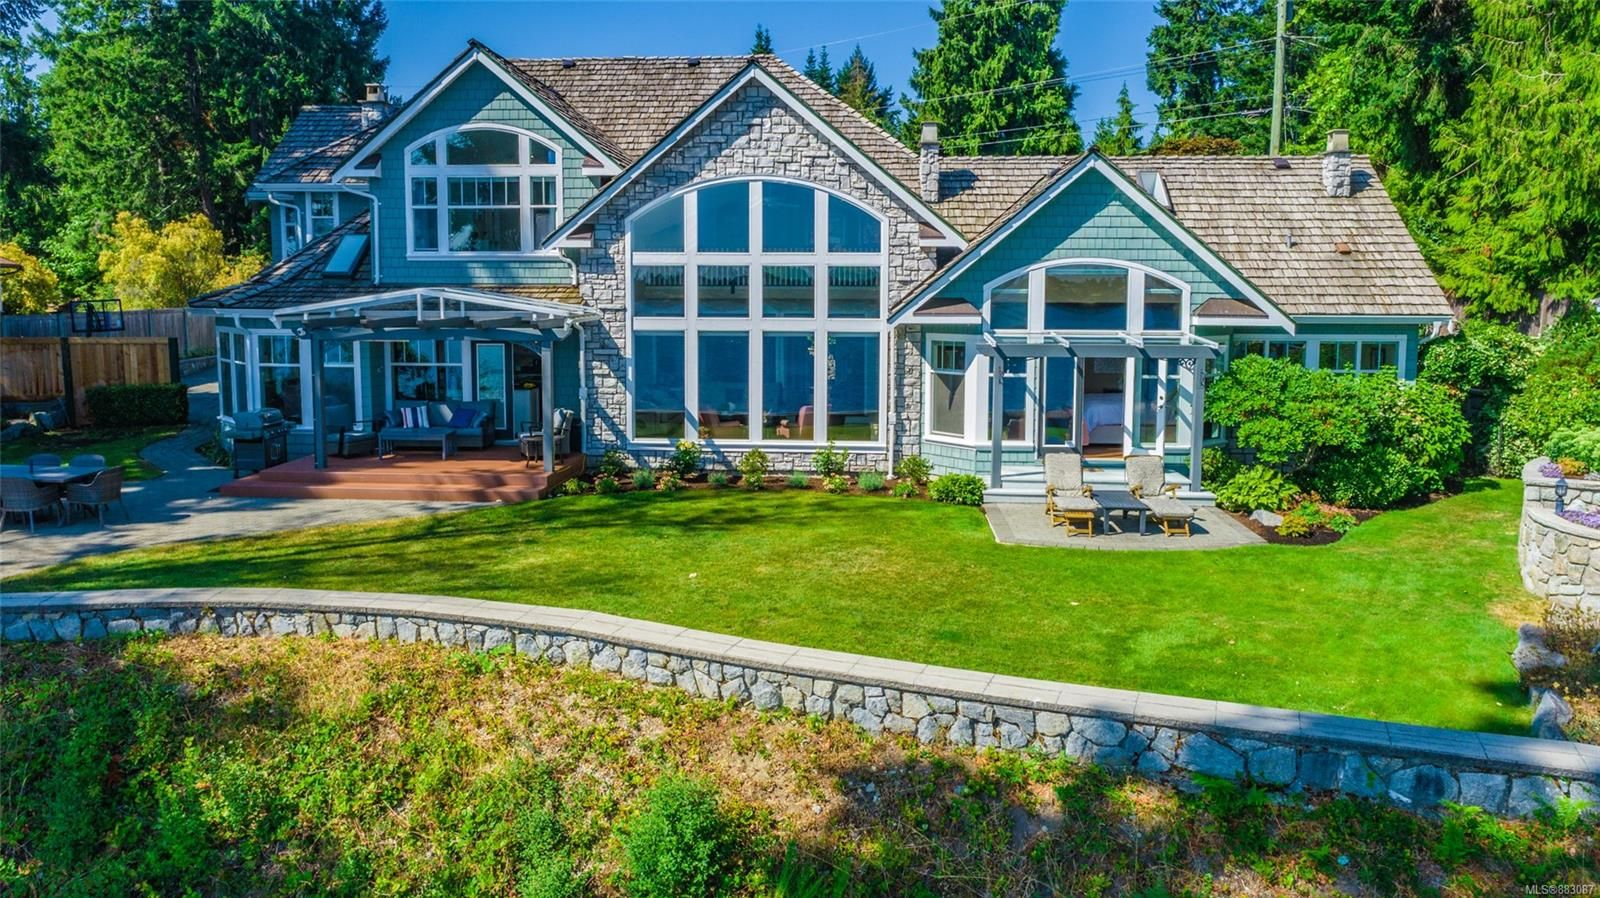 Main Photo: 1612 Brunt Rd in : PQ Nanoose House for sale (Parksville/Qualicum)  : MLS®# 883087